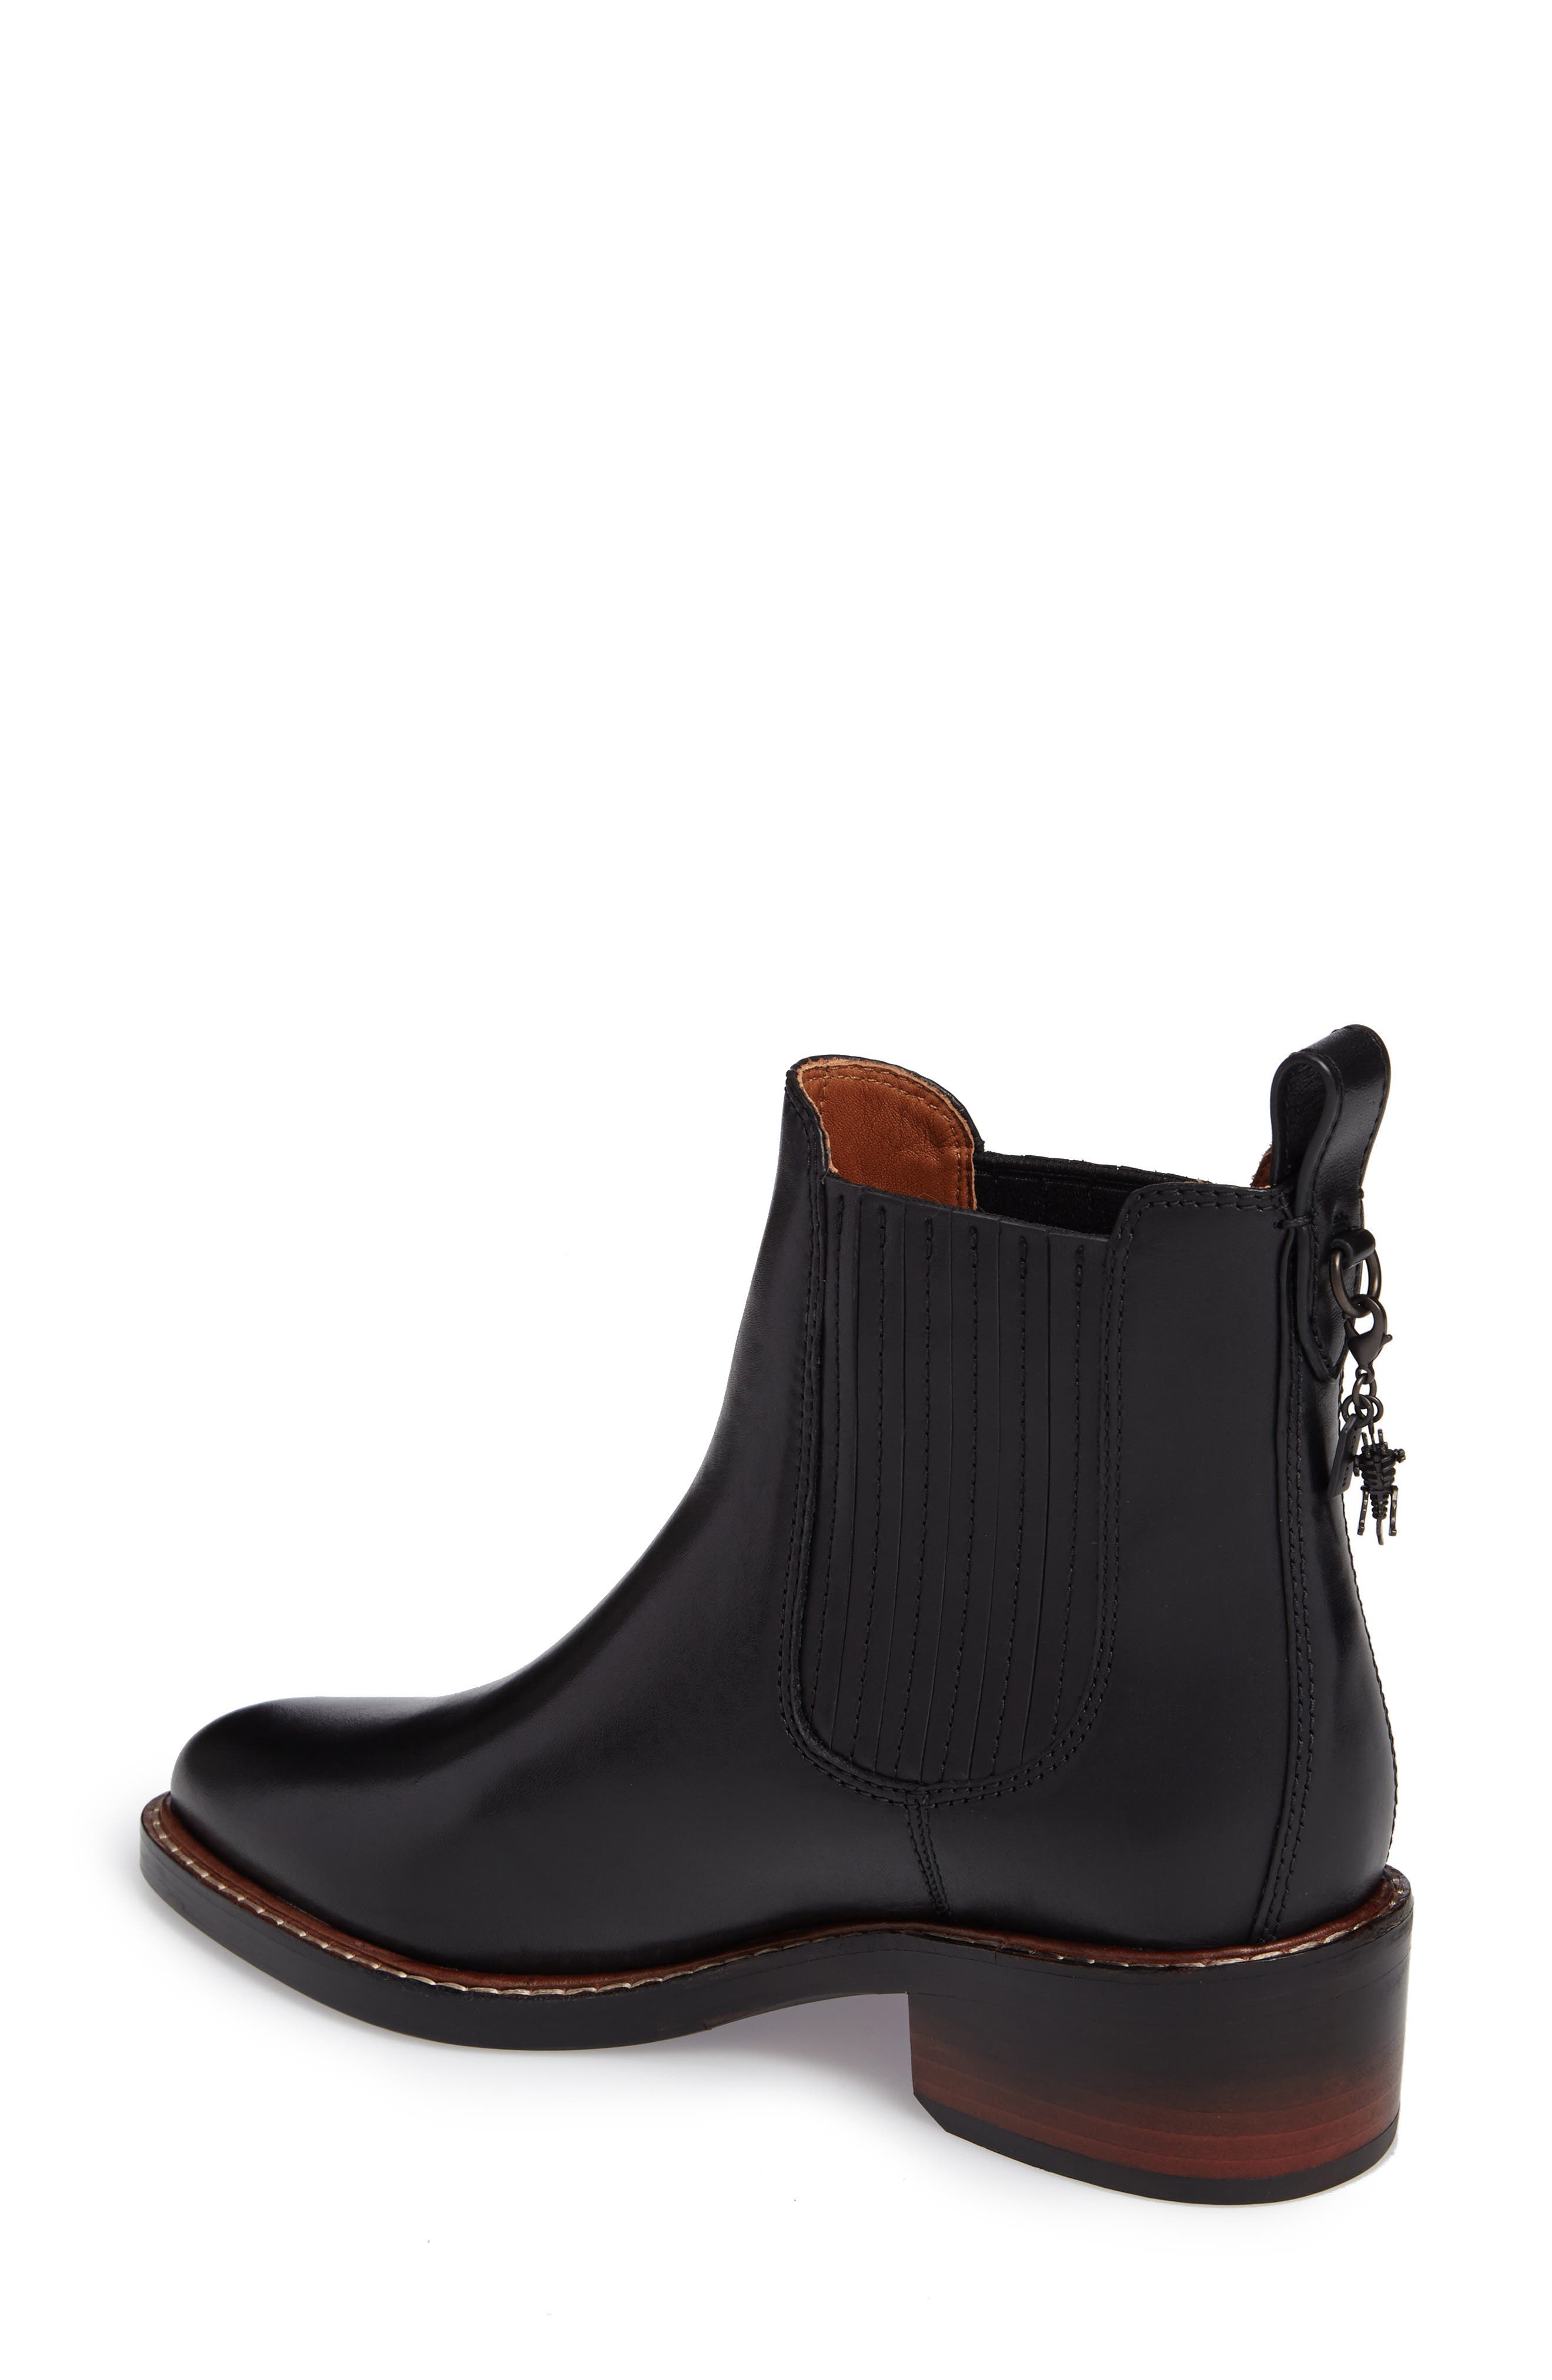 Bowery Embroidered Chelsea Bootie,                             Alternate thumbnail 2, color,                             Black Leather